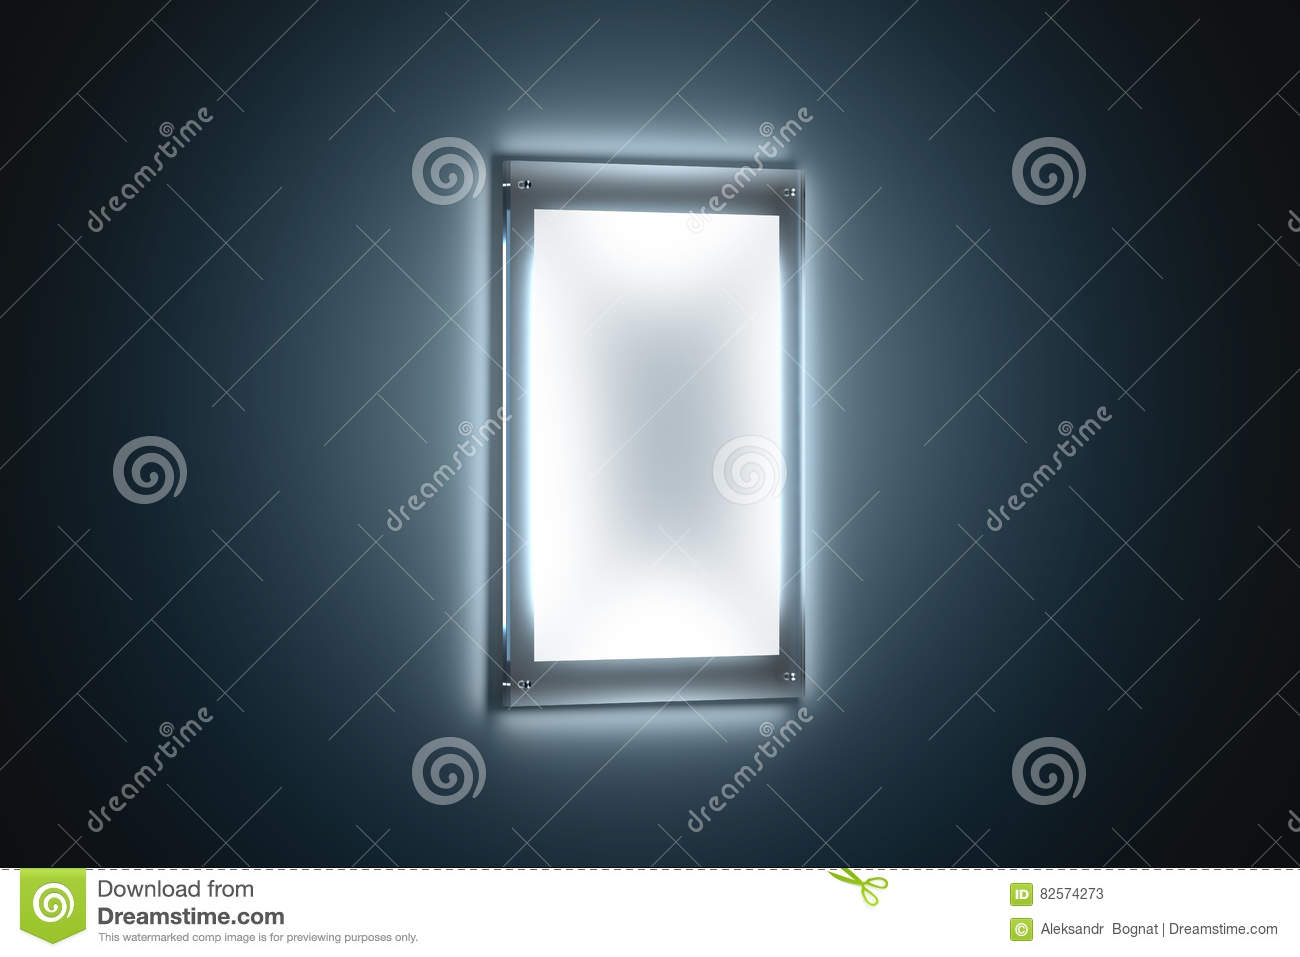 Download Blank White A3 Poster Mockup In Illuminated Glass Holder Stock Image